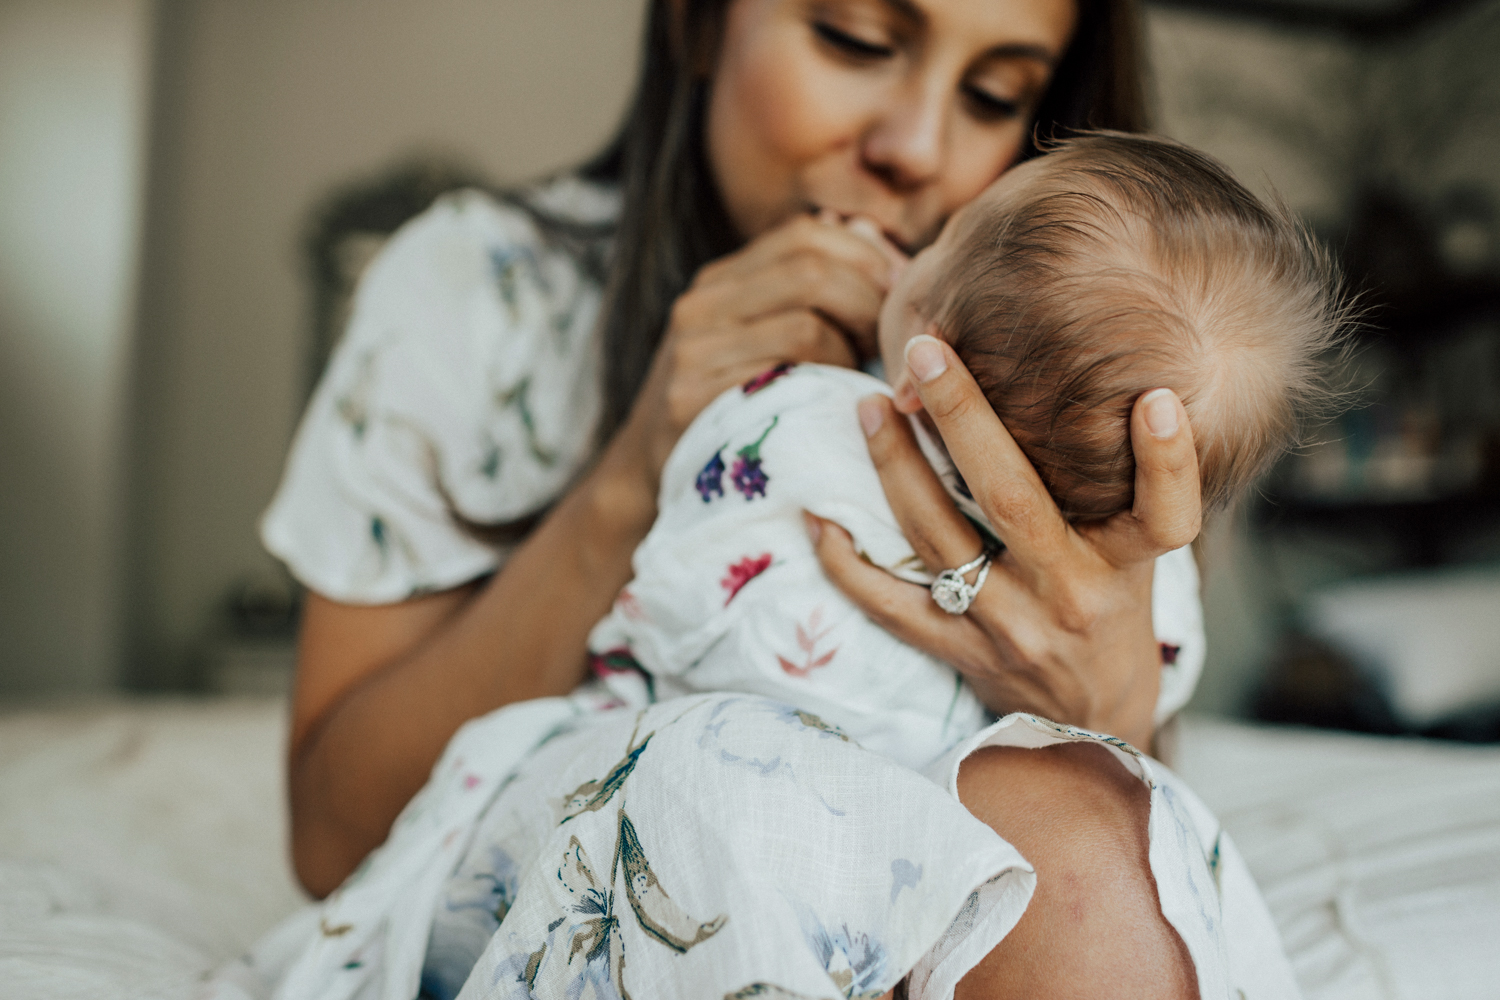 1804_1782_san-antonio-newborn-lifestyle-photography.jpg